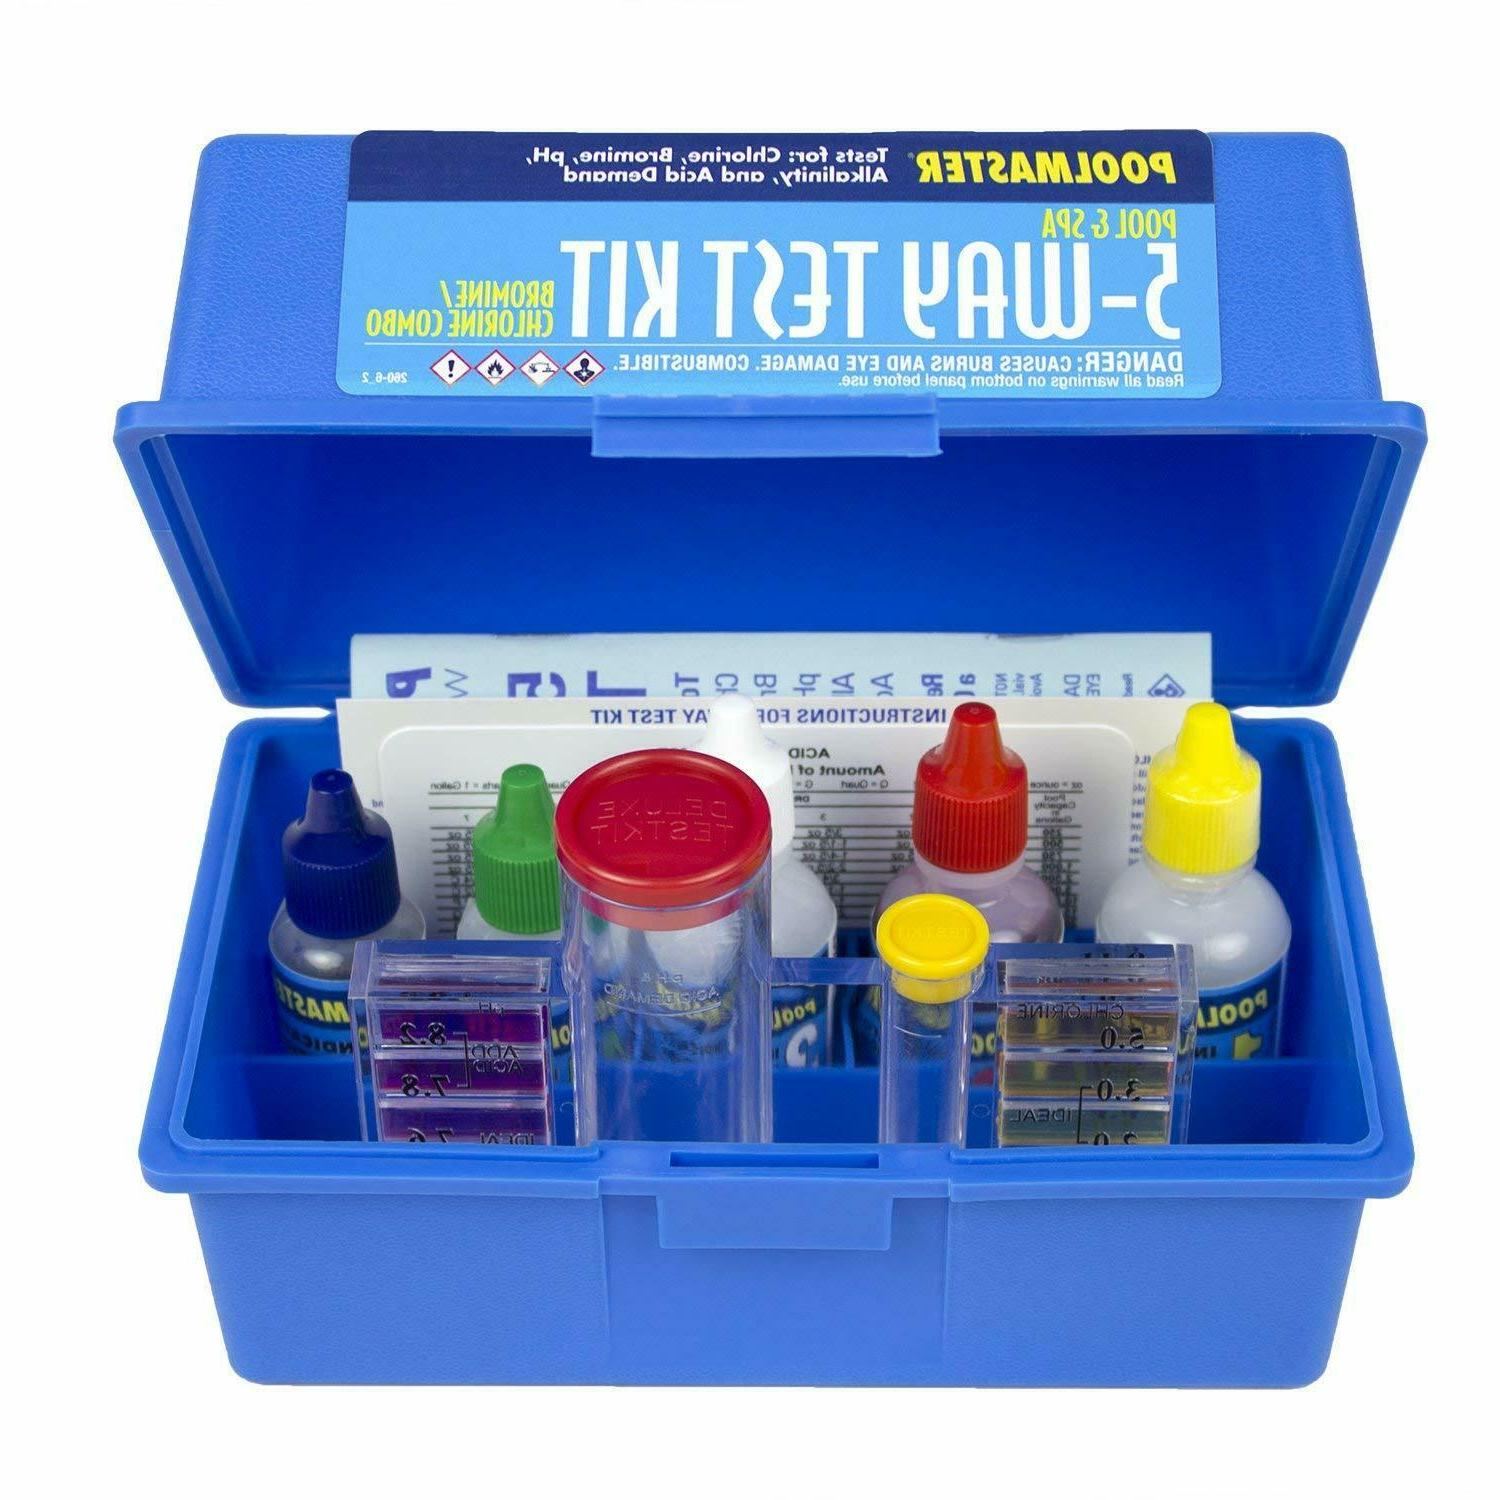 5-Way Swimming Pool or Spa Water Chemistry Test Kit w/ Case